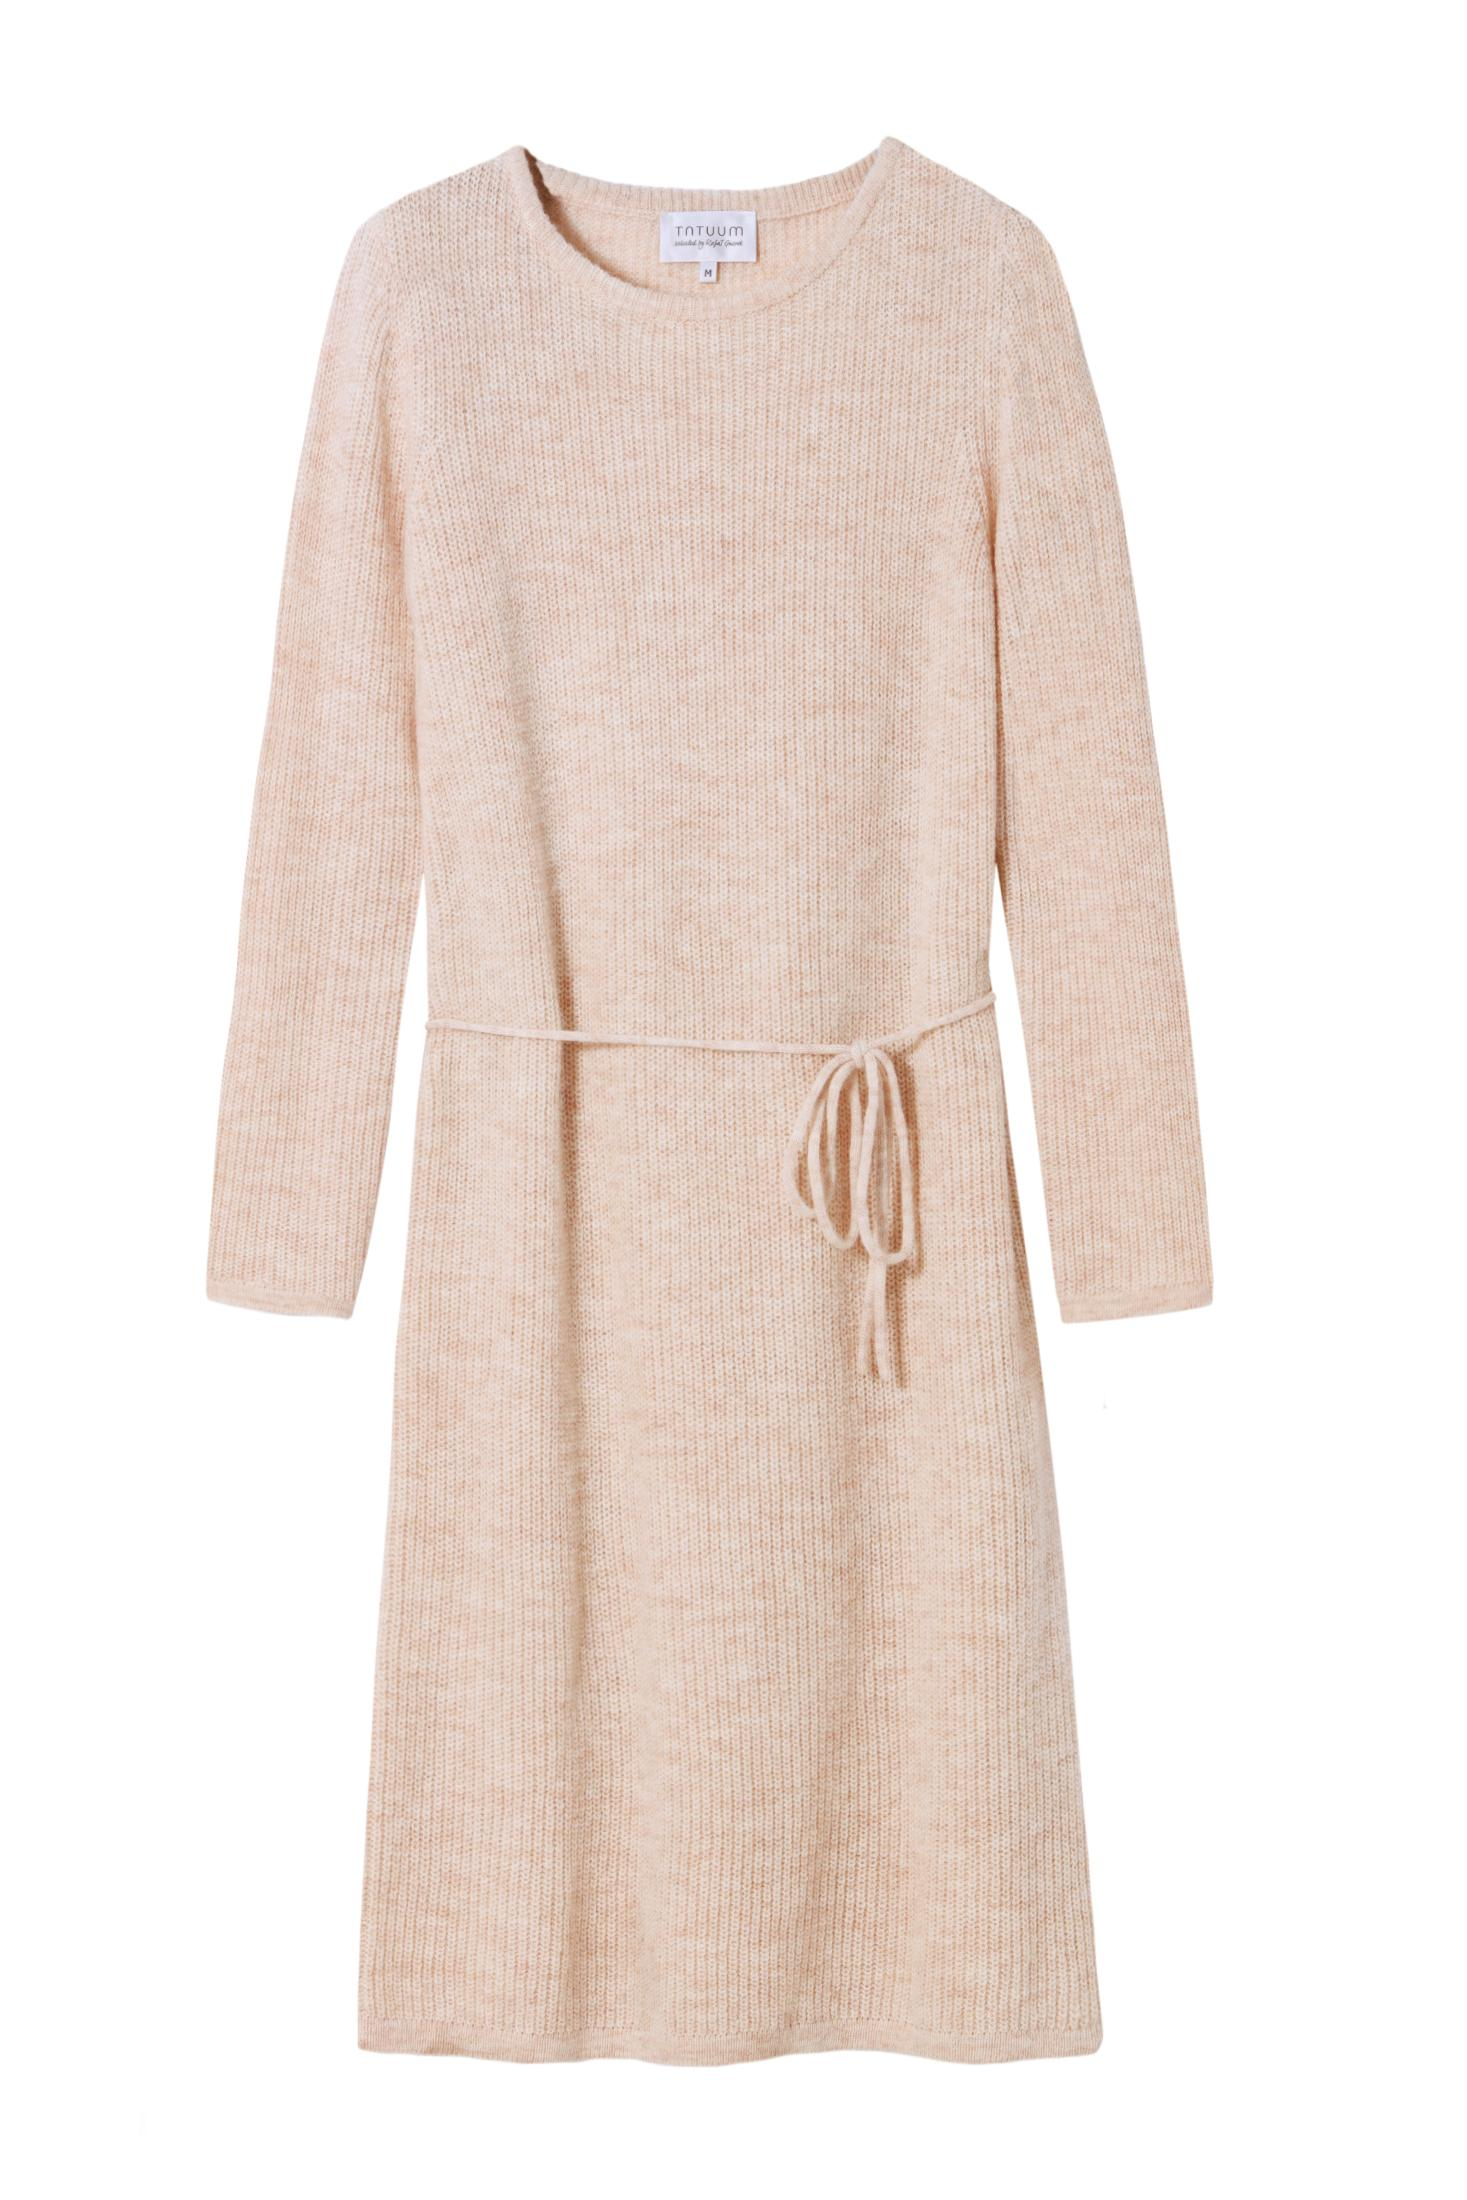 WOOL DRESS WITH A PEARL WEAVE - SELECTED TETIO